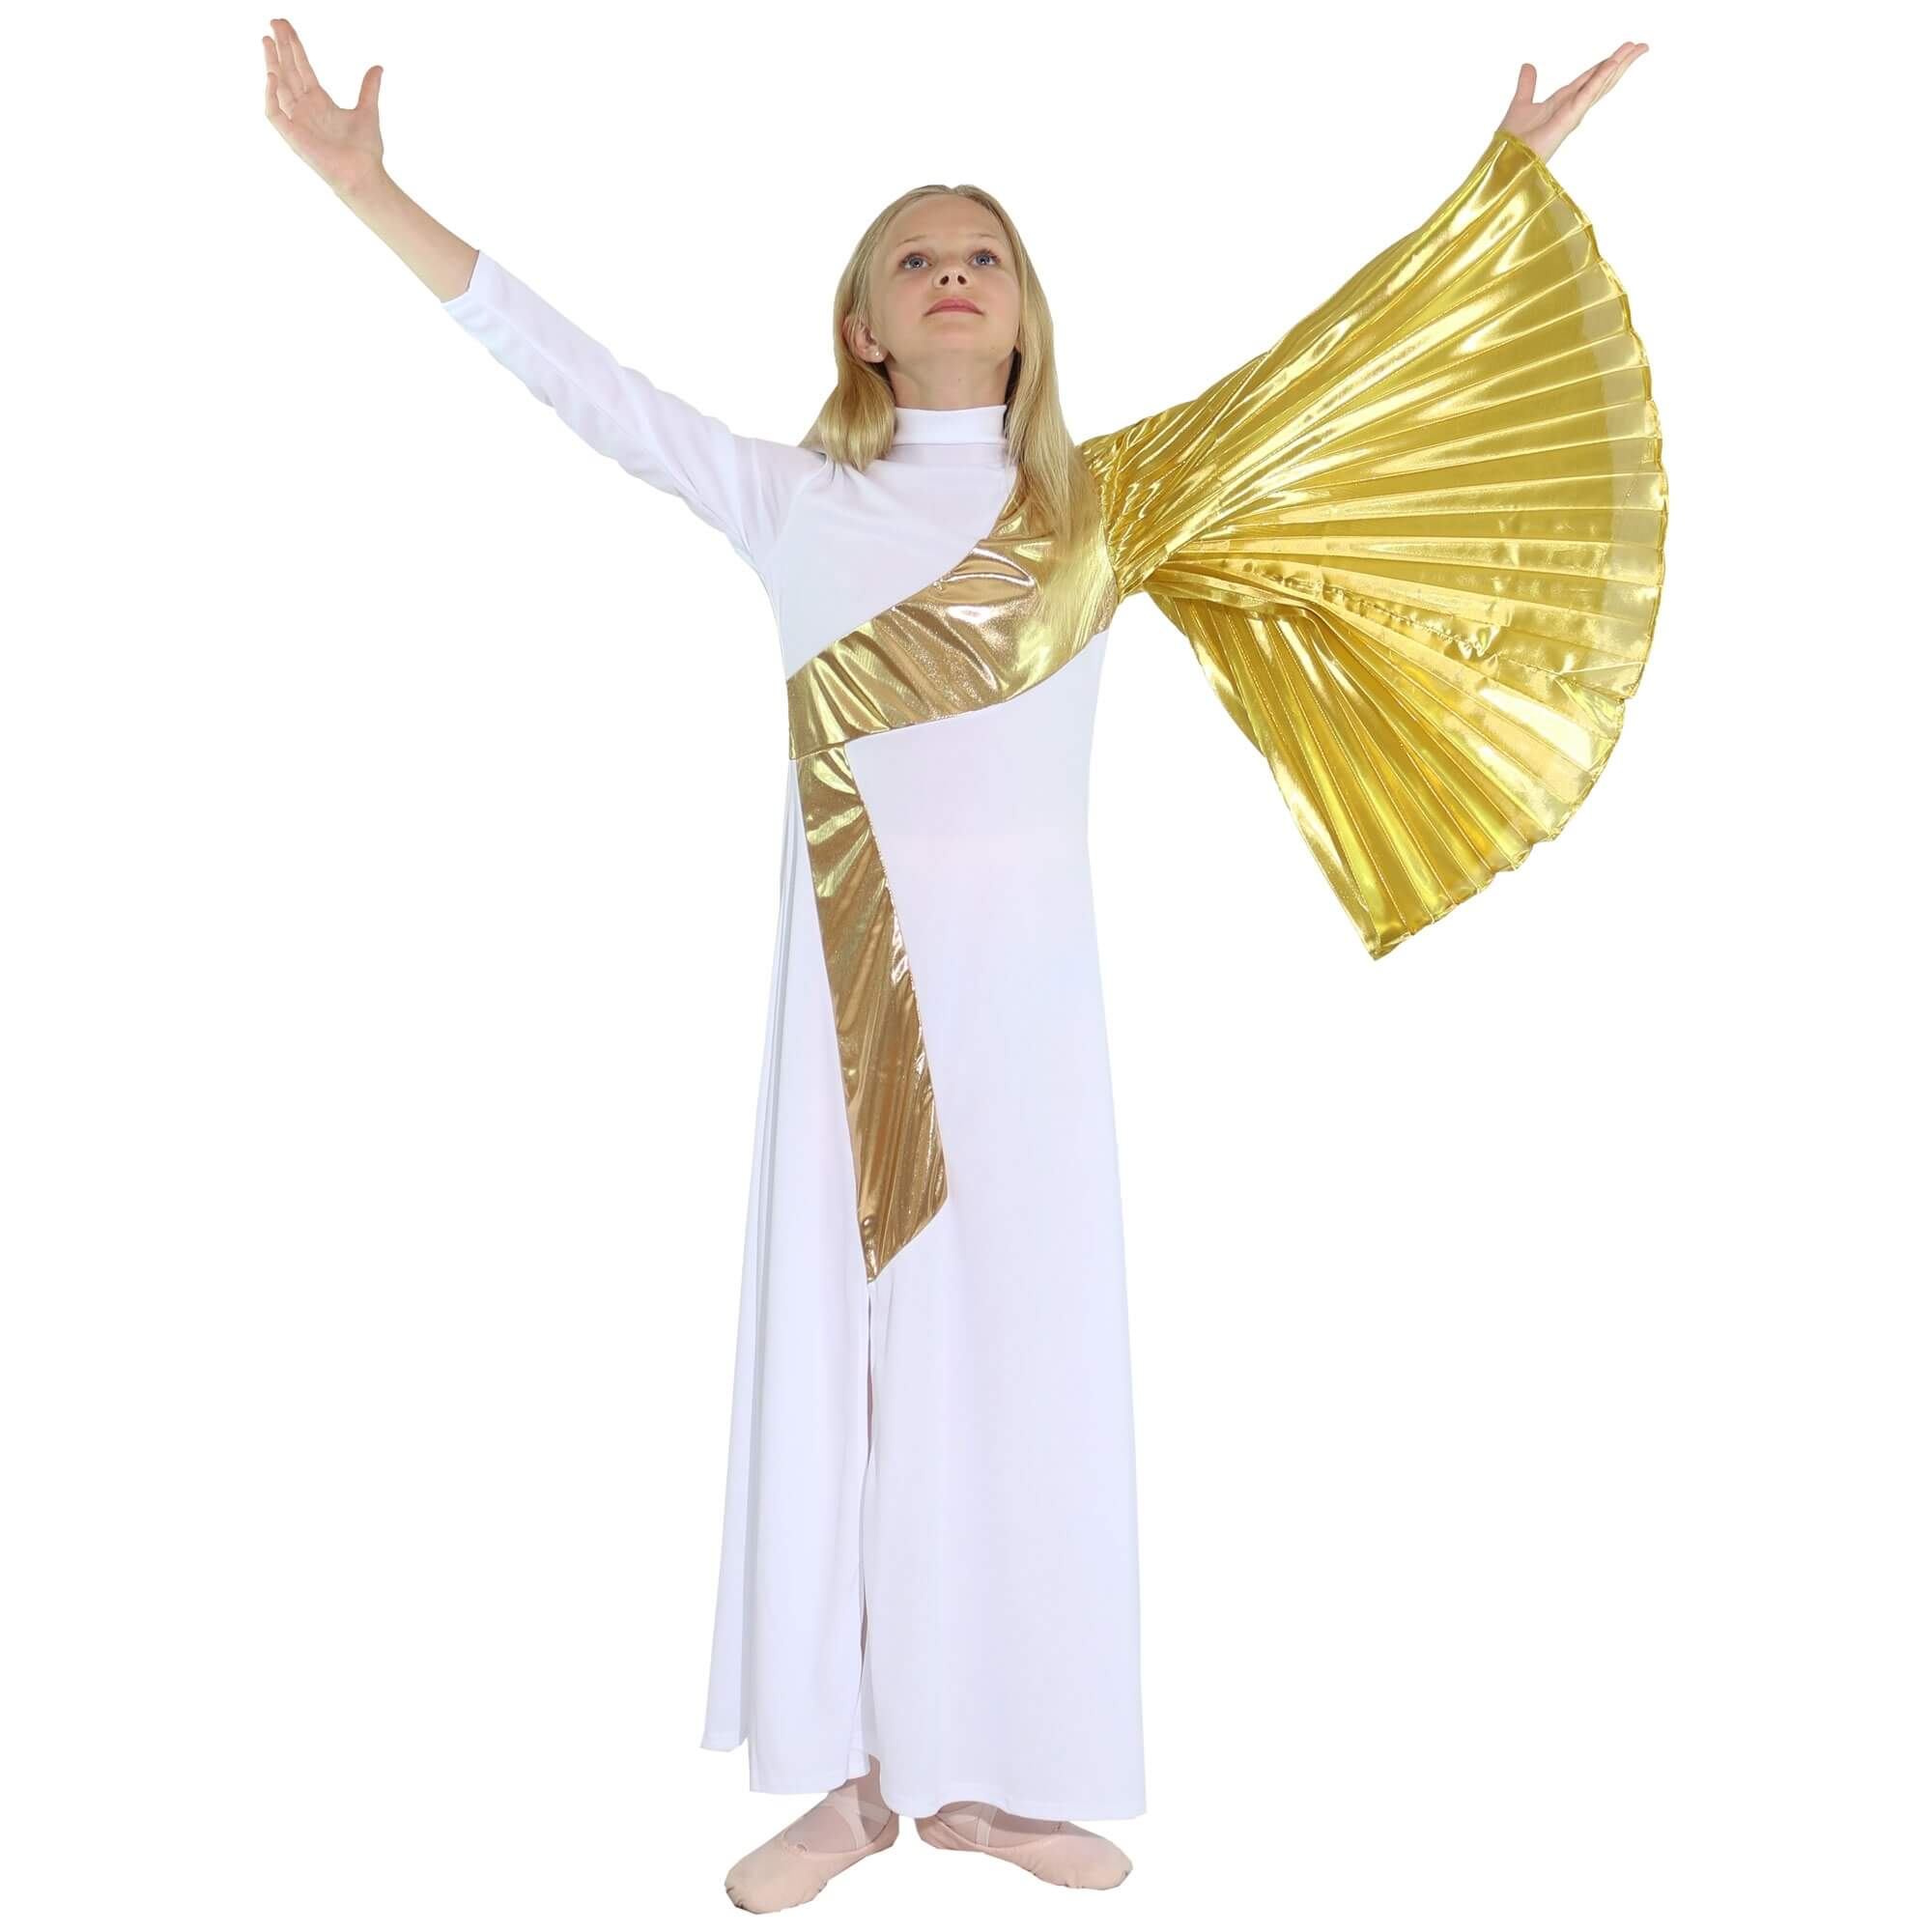 Danzcue Child Praise Wing Dress